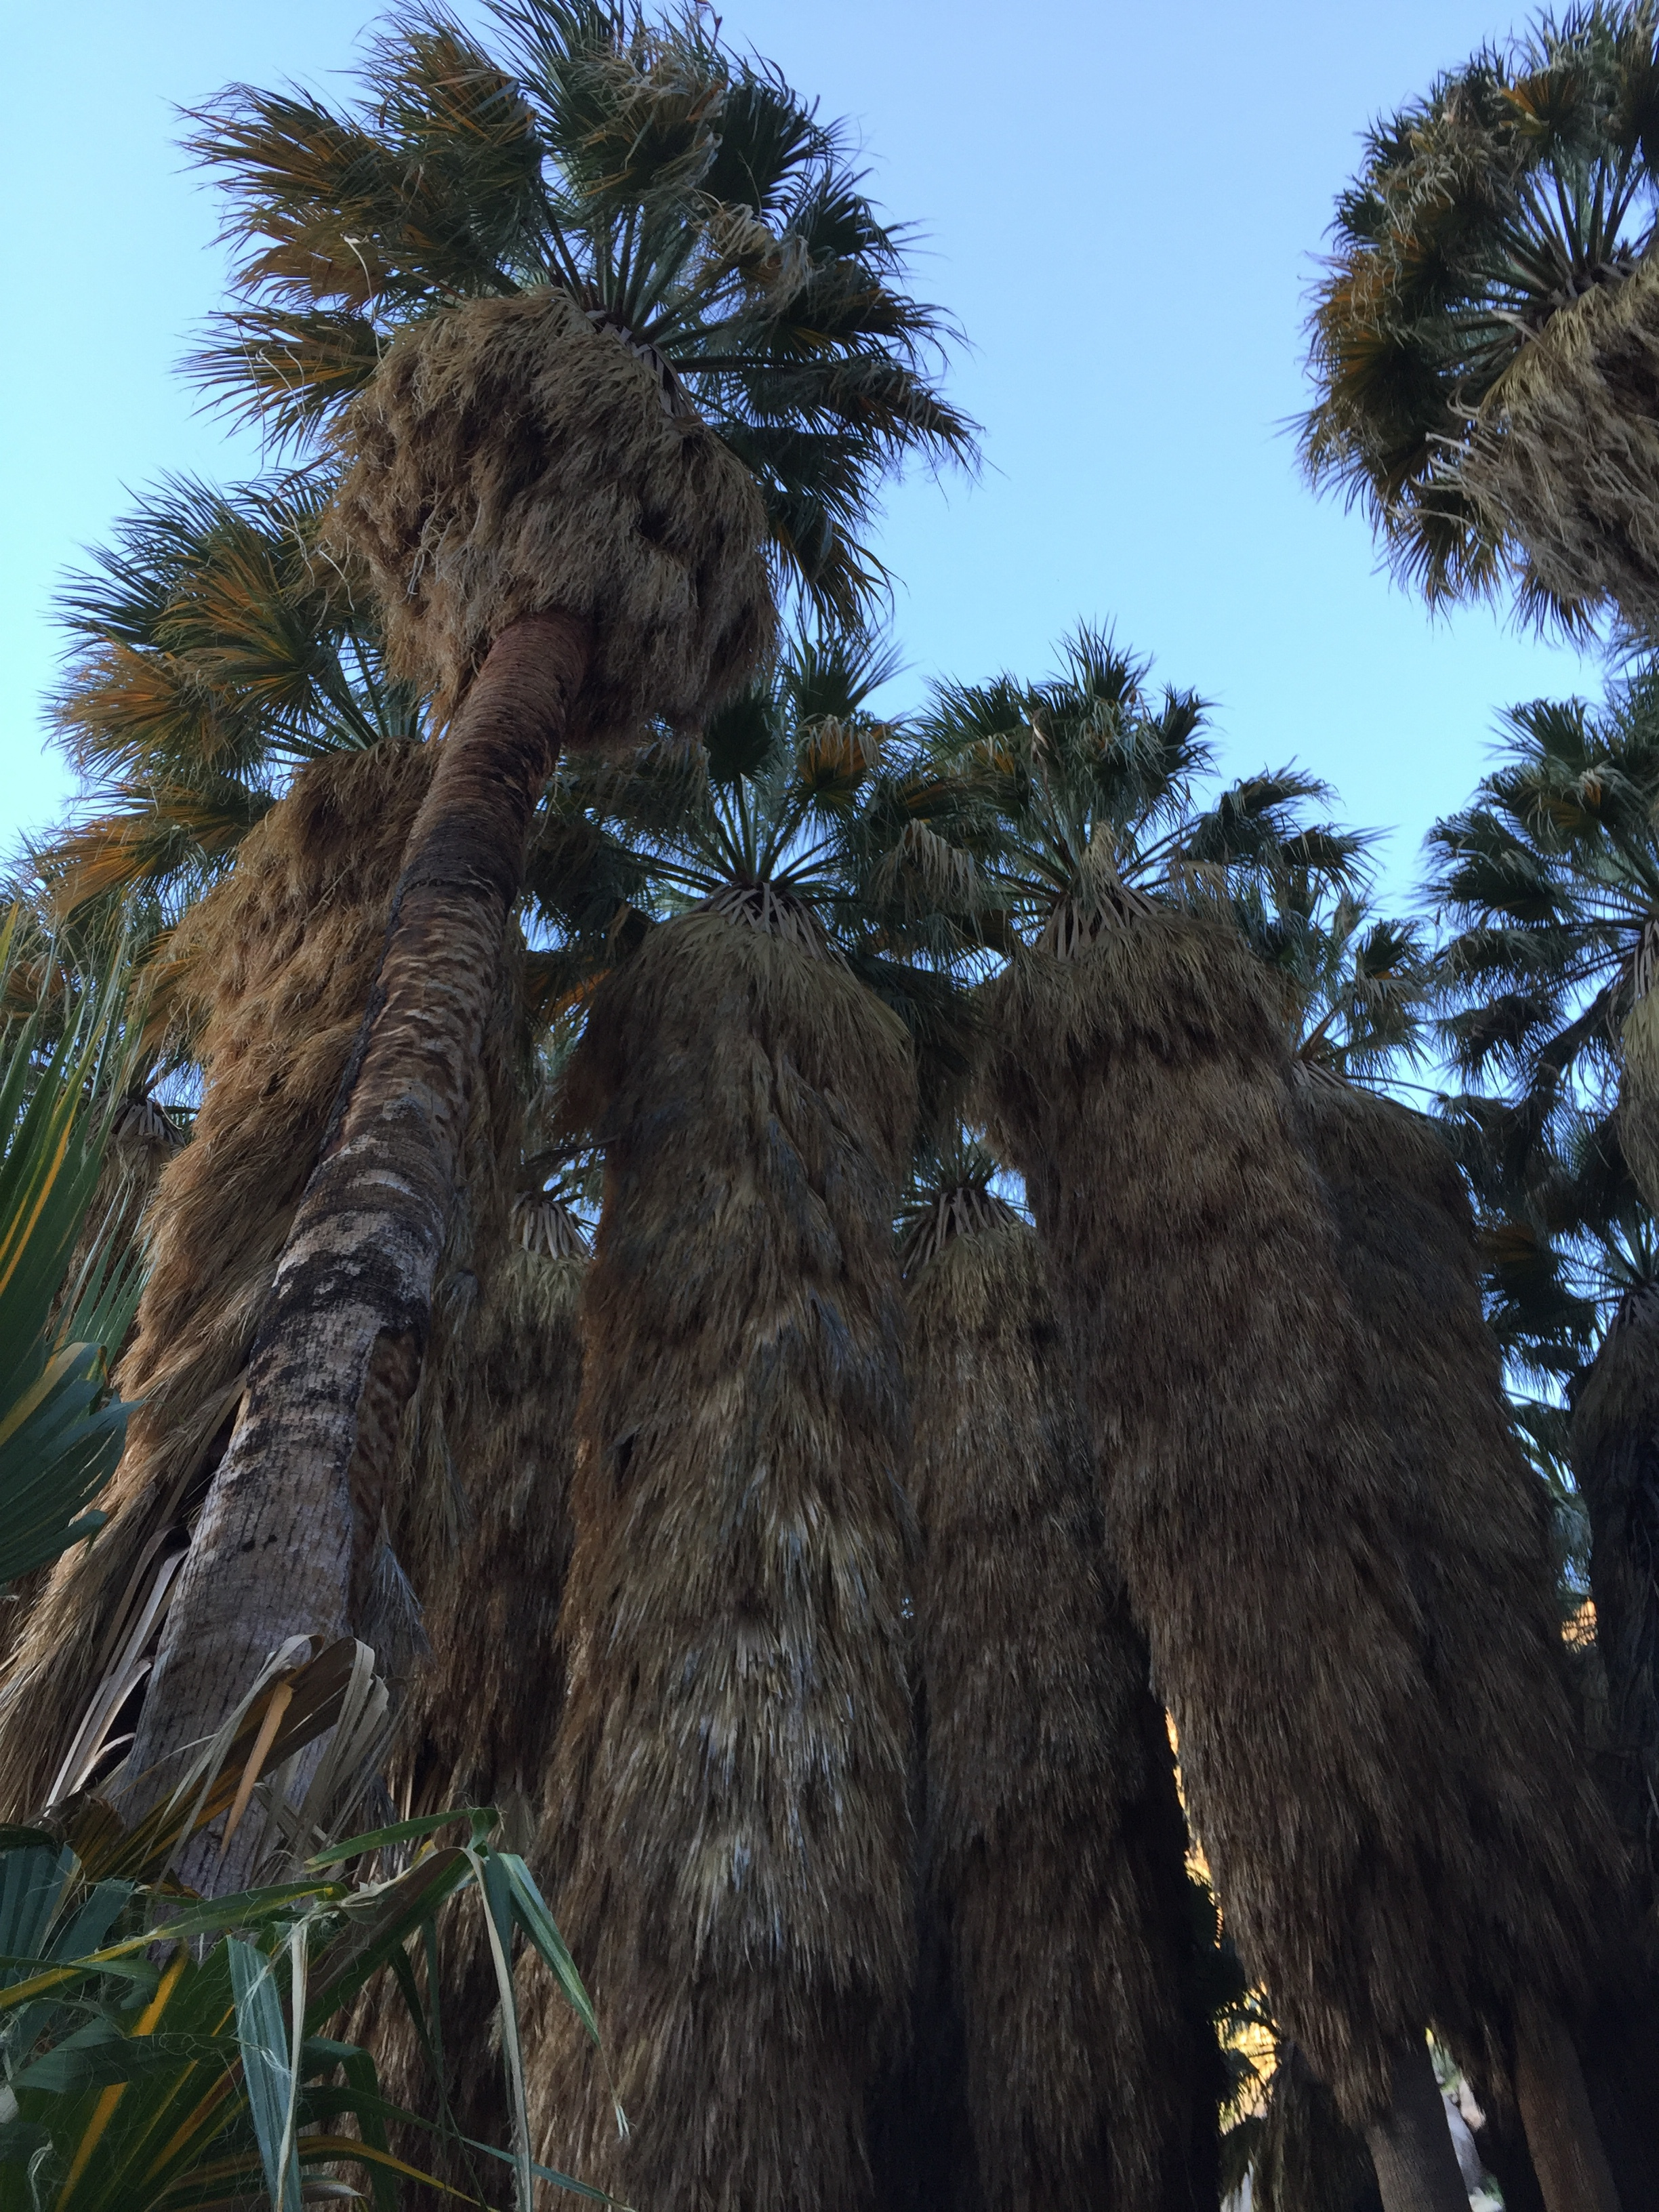 Palms surrounding oasis, Borrego Palm Canyon, Anza-Borrego Desert State Park. Photo by Betsy Herbert, 2017